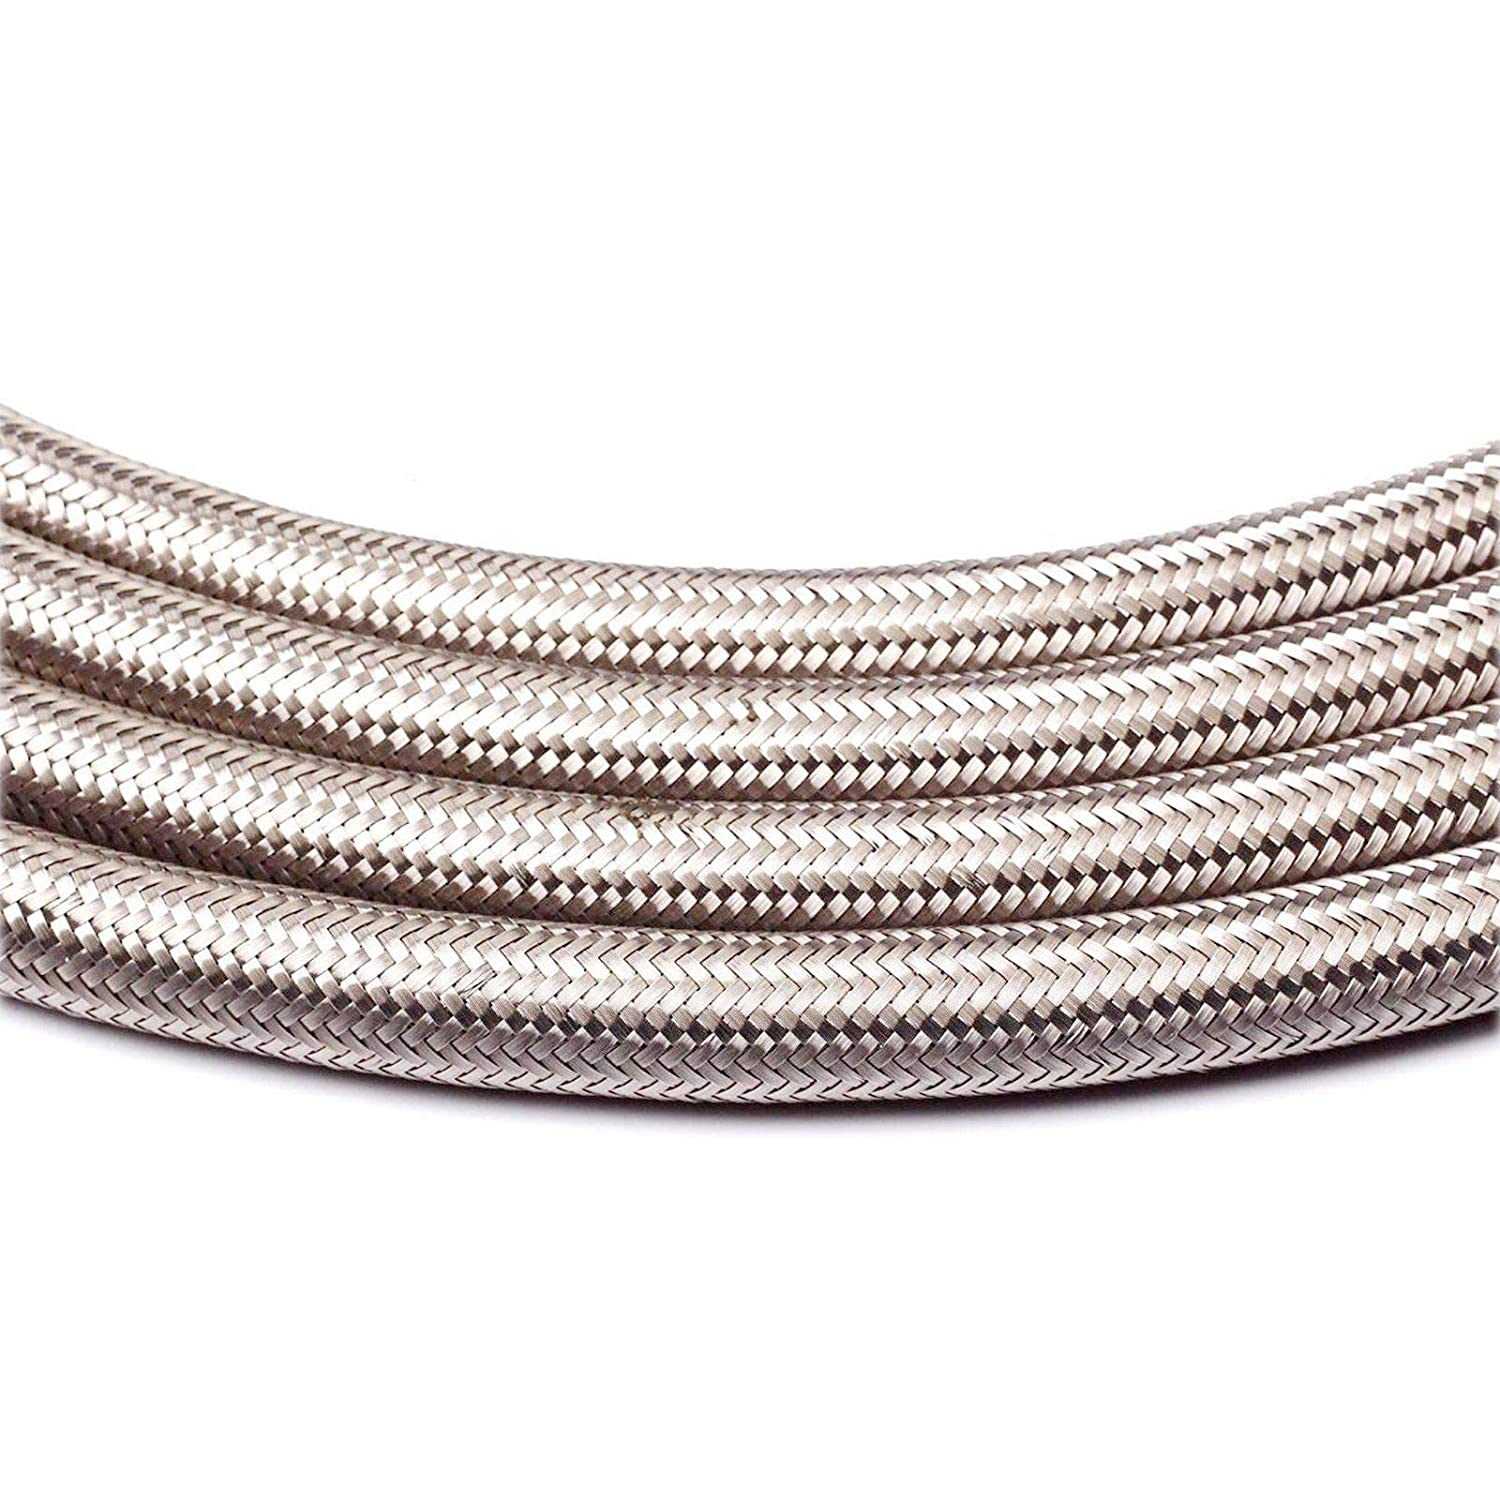 Black, AN6 Stainless Steel Braided Fuel Line Hose 10FEET